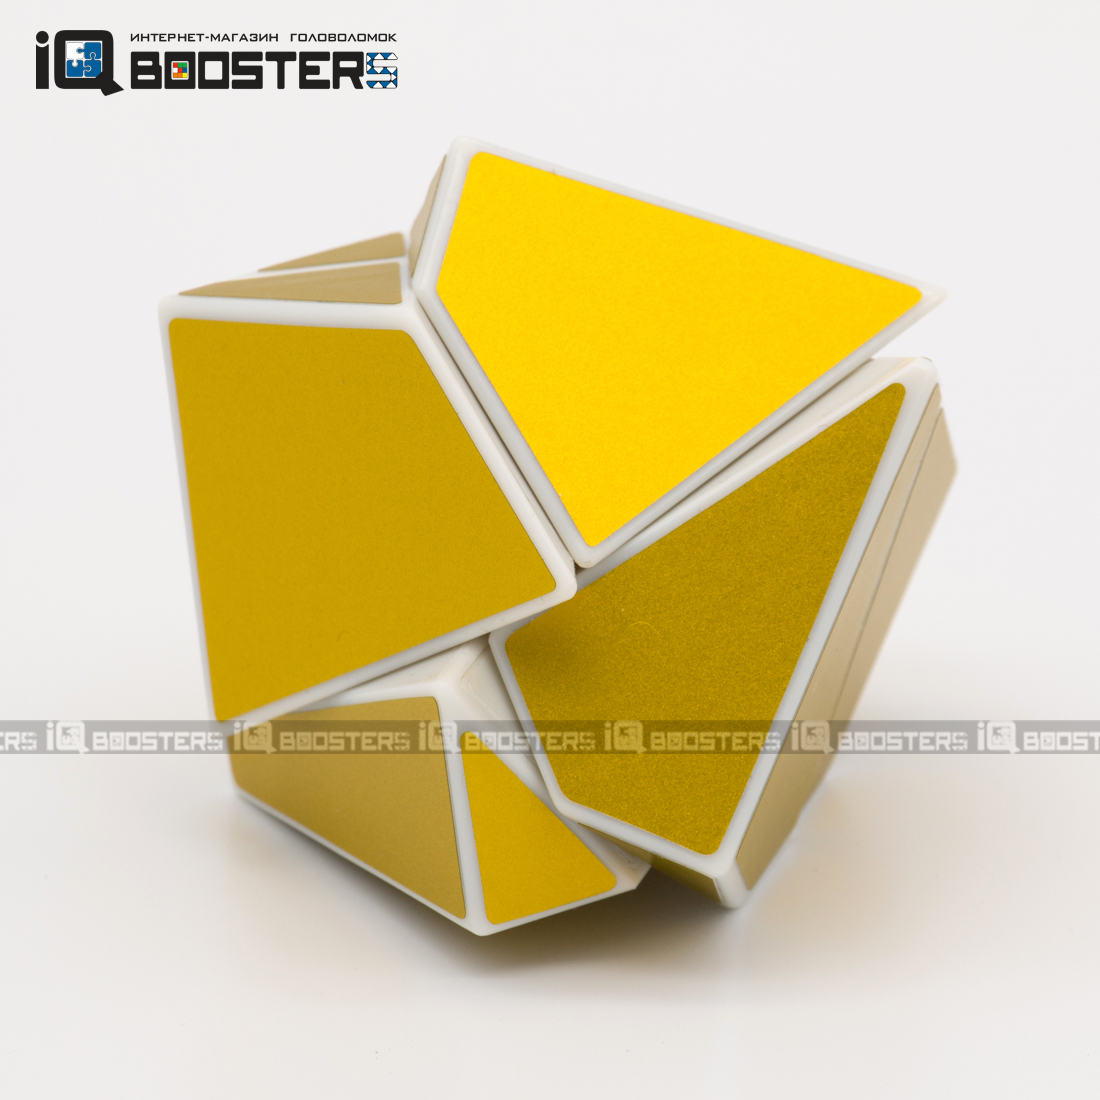 limcube_ghost_2x2_2g